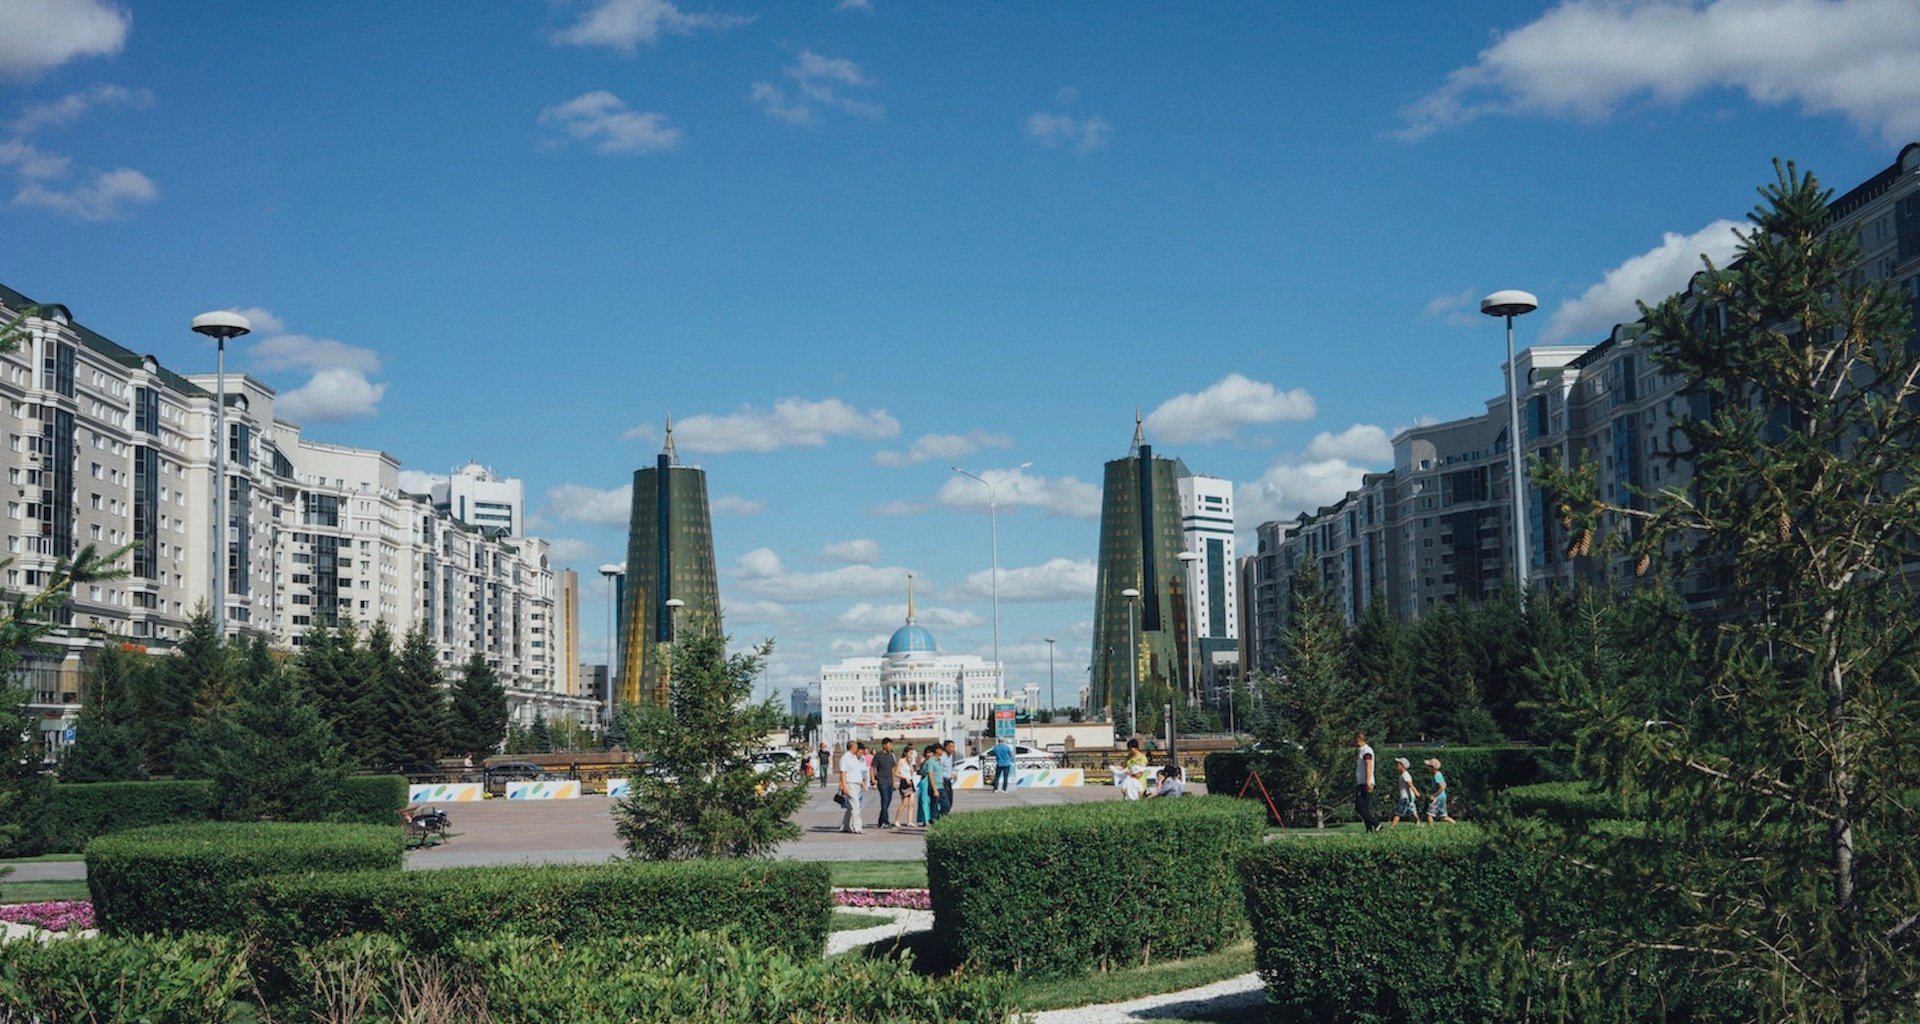 5 minute guide to Nur-Sultan: eat, drink, and party in Kazakhstan's newly-renamed capital